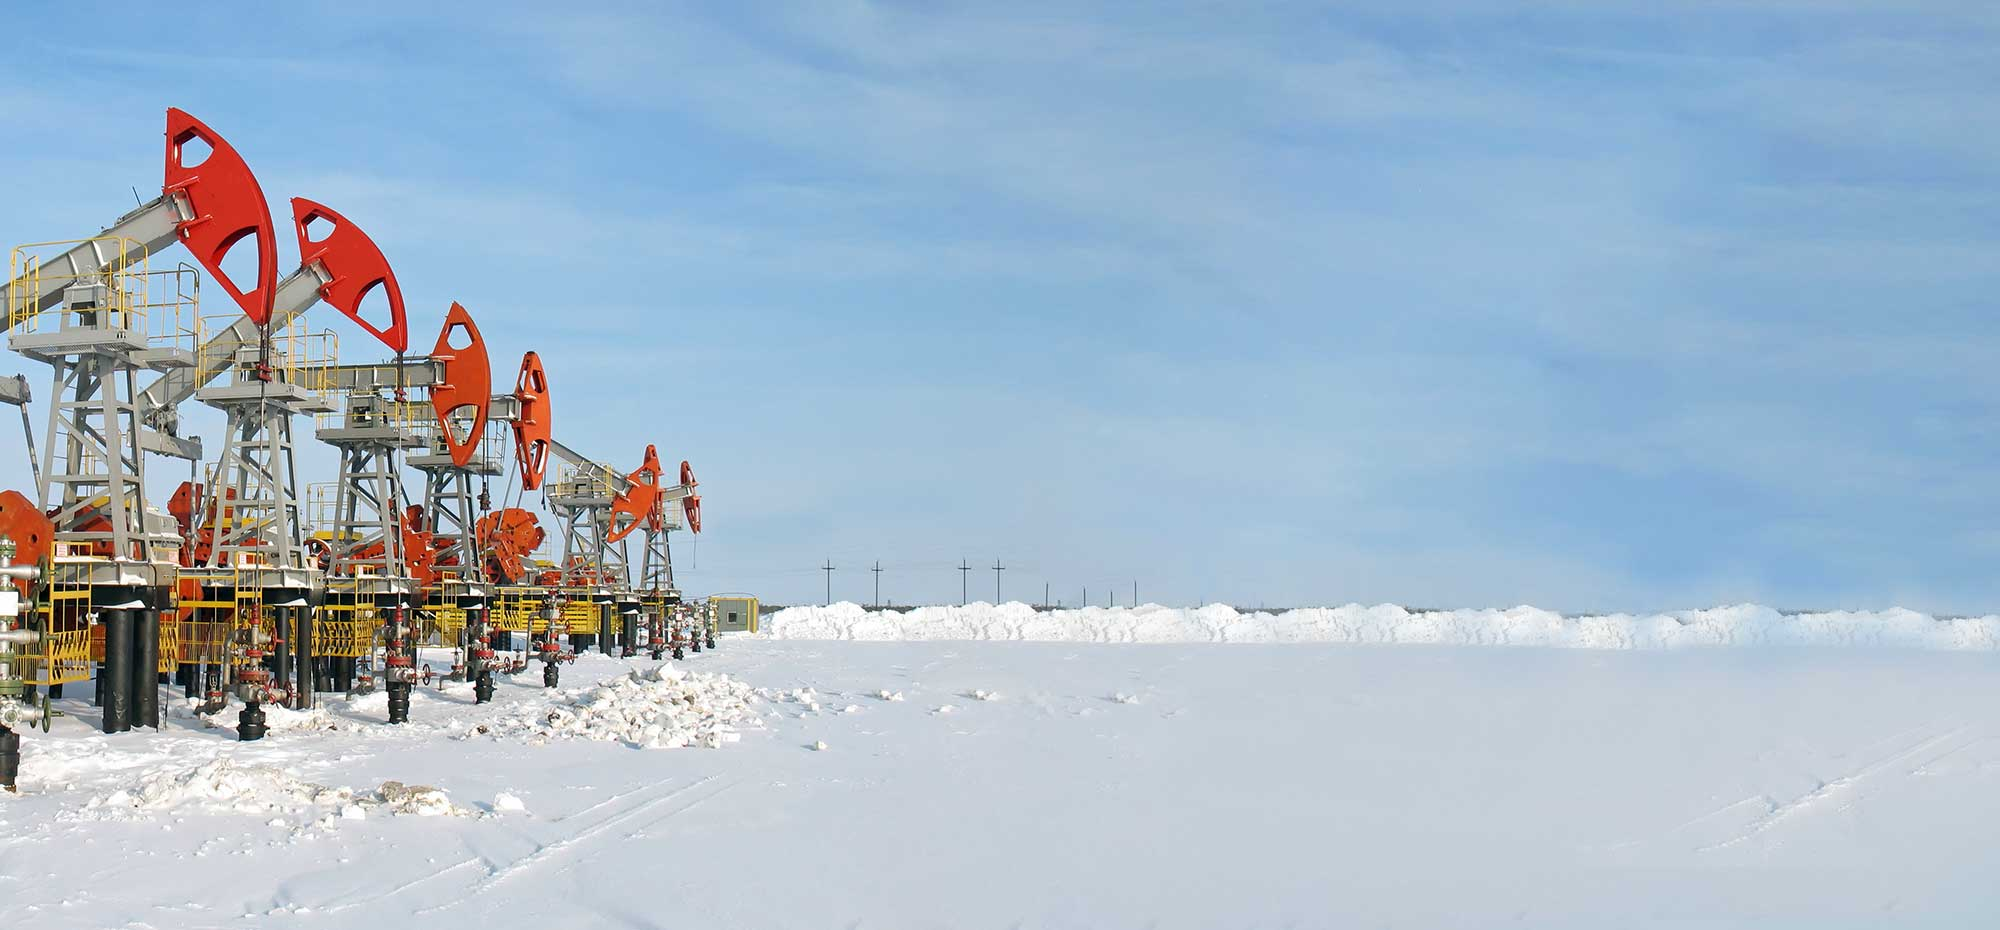 ice cleats for industrial oil fields